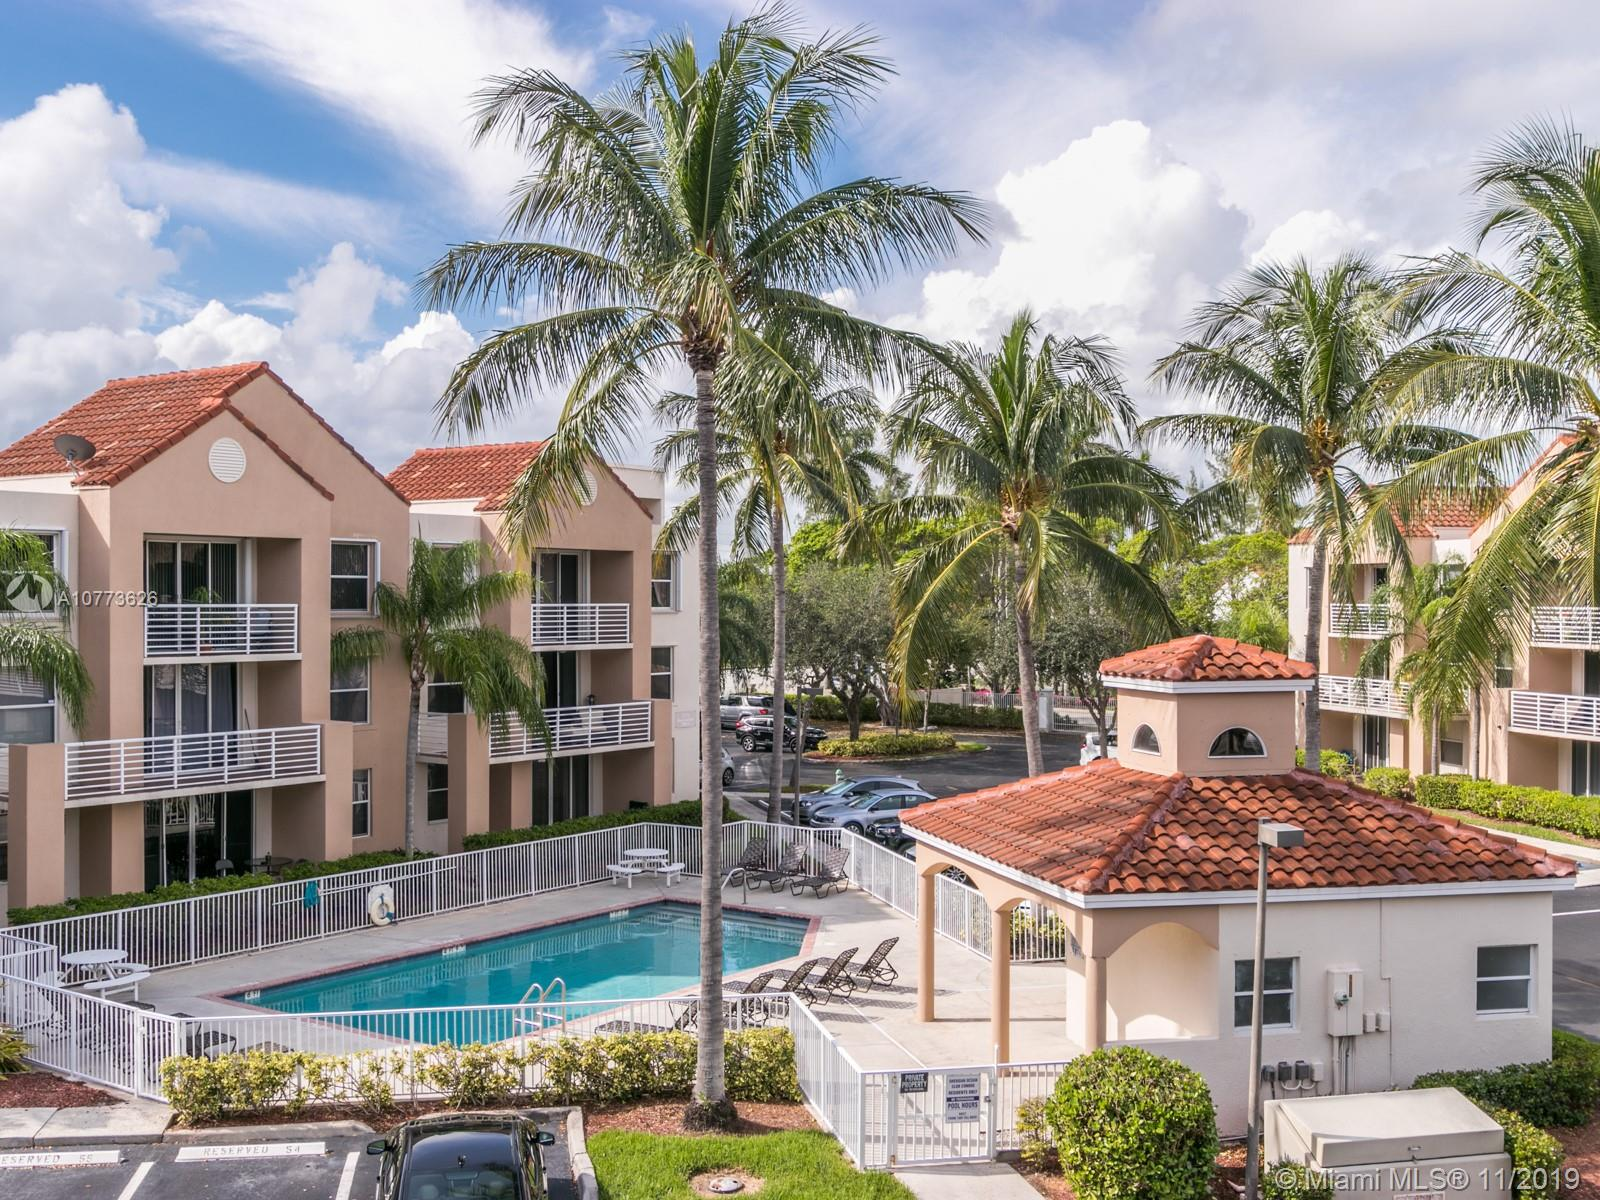 Homes in Hollywood FL | Real Estate and Homes for Sale Miami